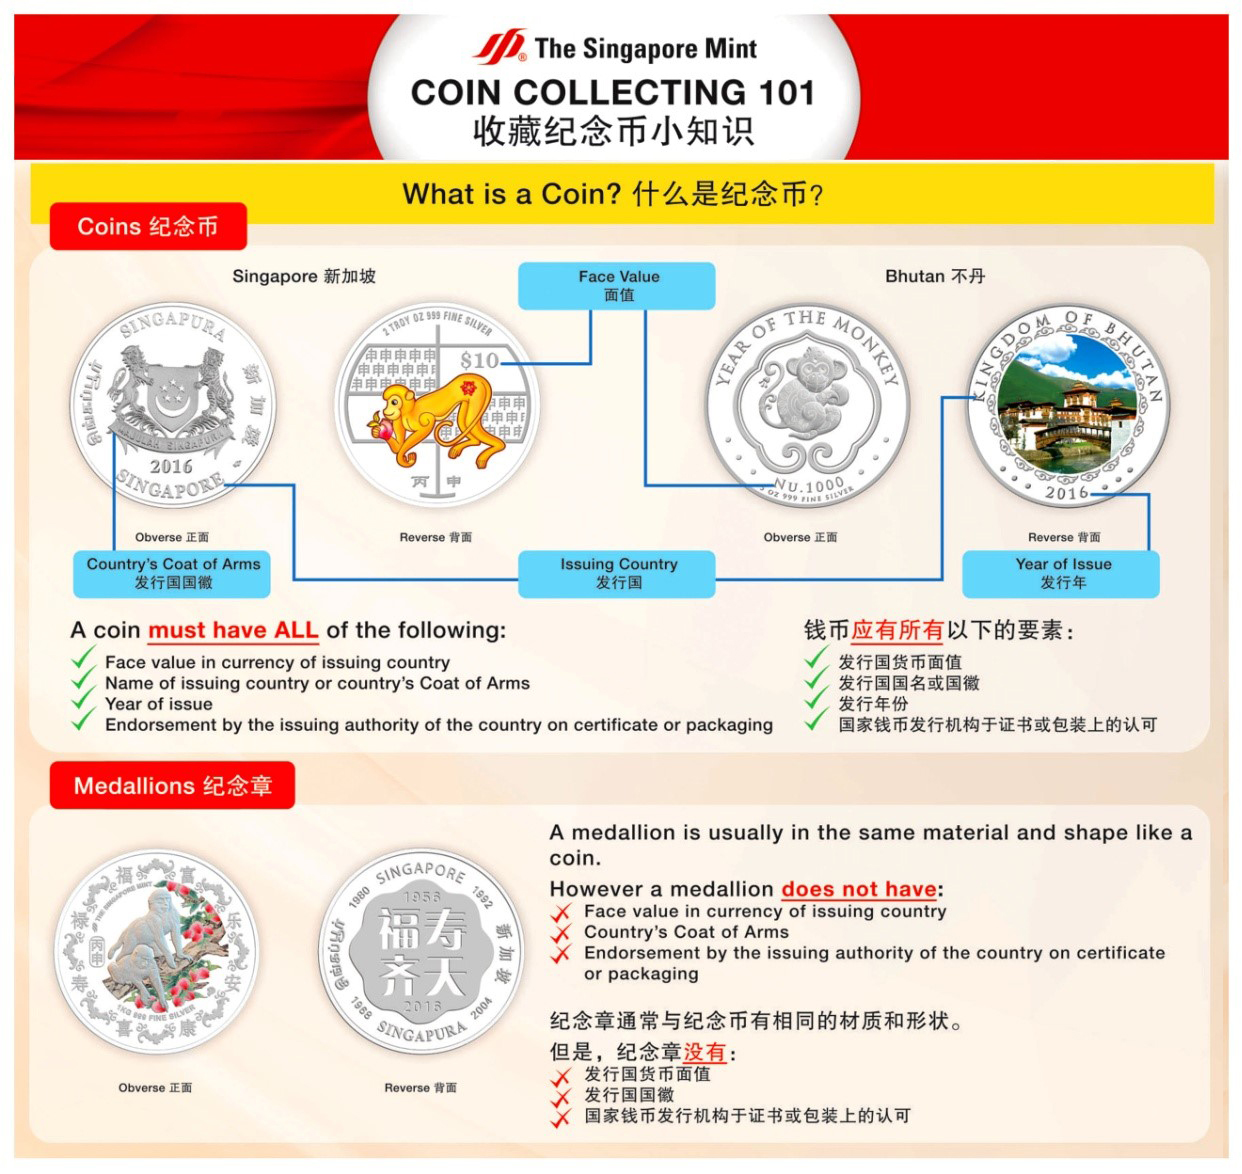 Differentiating between a Coin and a Medallion